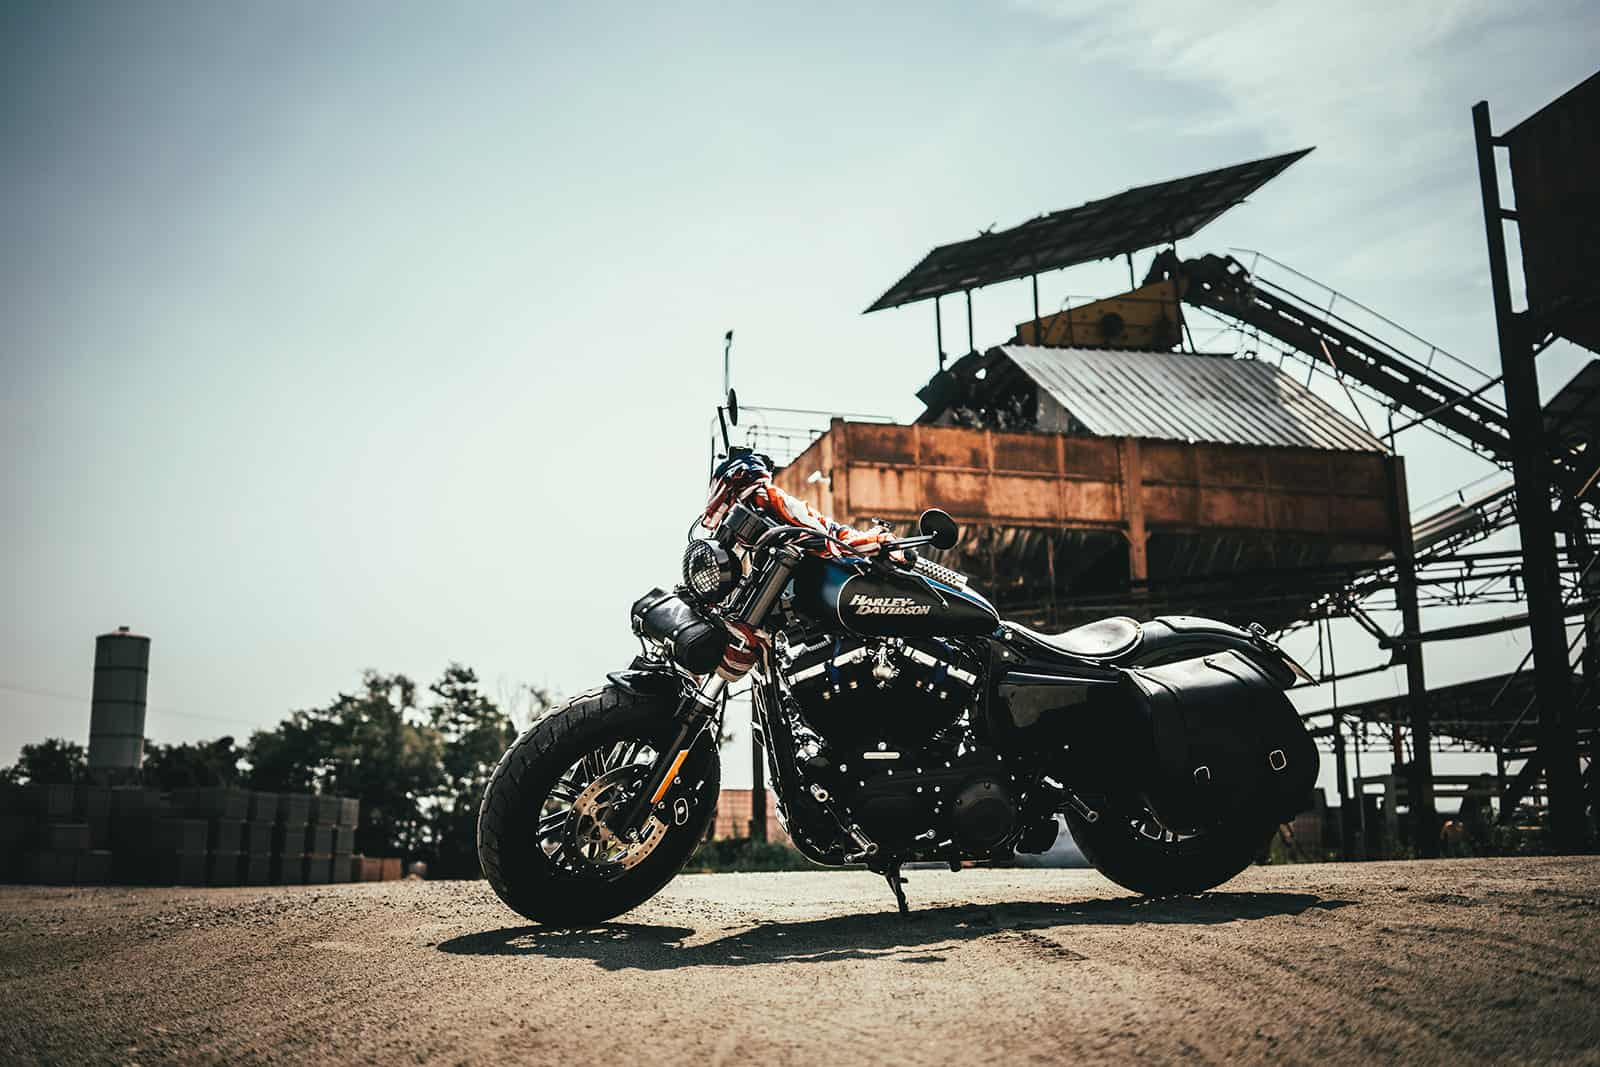 Motorbike with industrial background